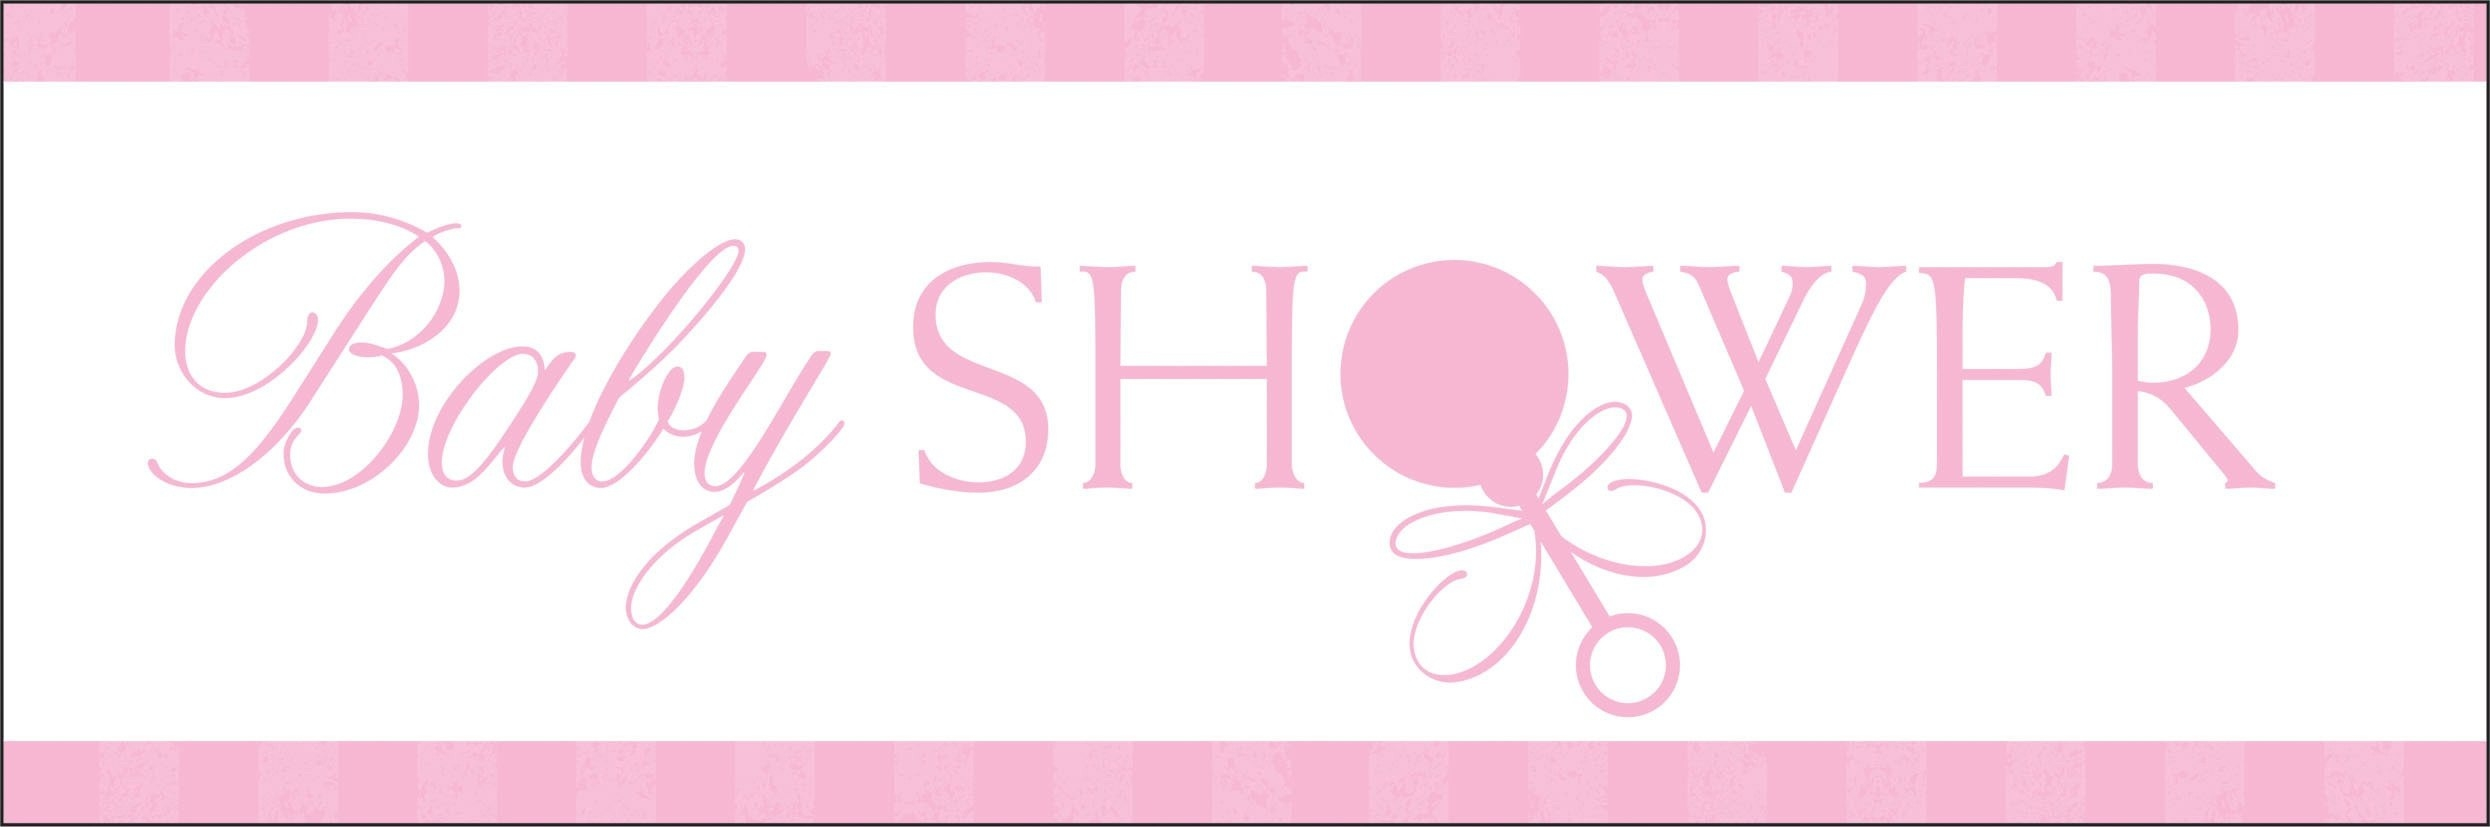 Full Size of Baby Shower:89+ Indulging Baby Shower Banner Picture Inspirations Best Shows For Babies With Baby Shower Baskets Plus Twins Baby Shower Together With Free Baby Shower Games As Well As Baby Shower Hairstyles And Baby Shower Dessert Table